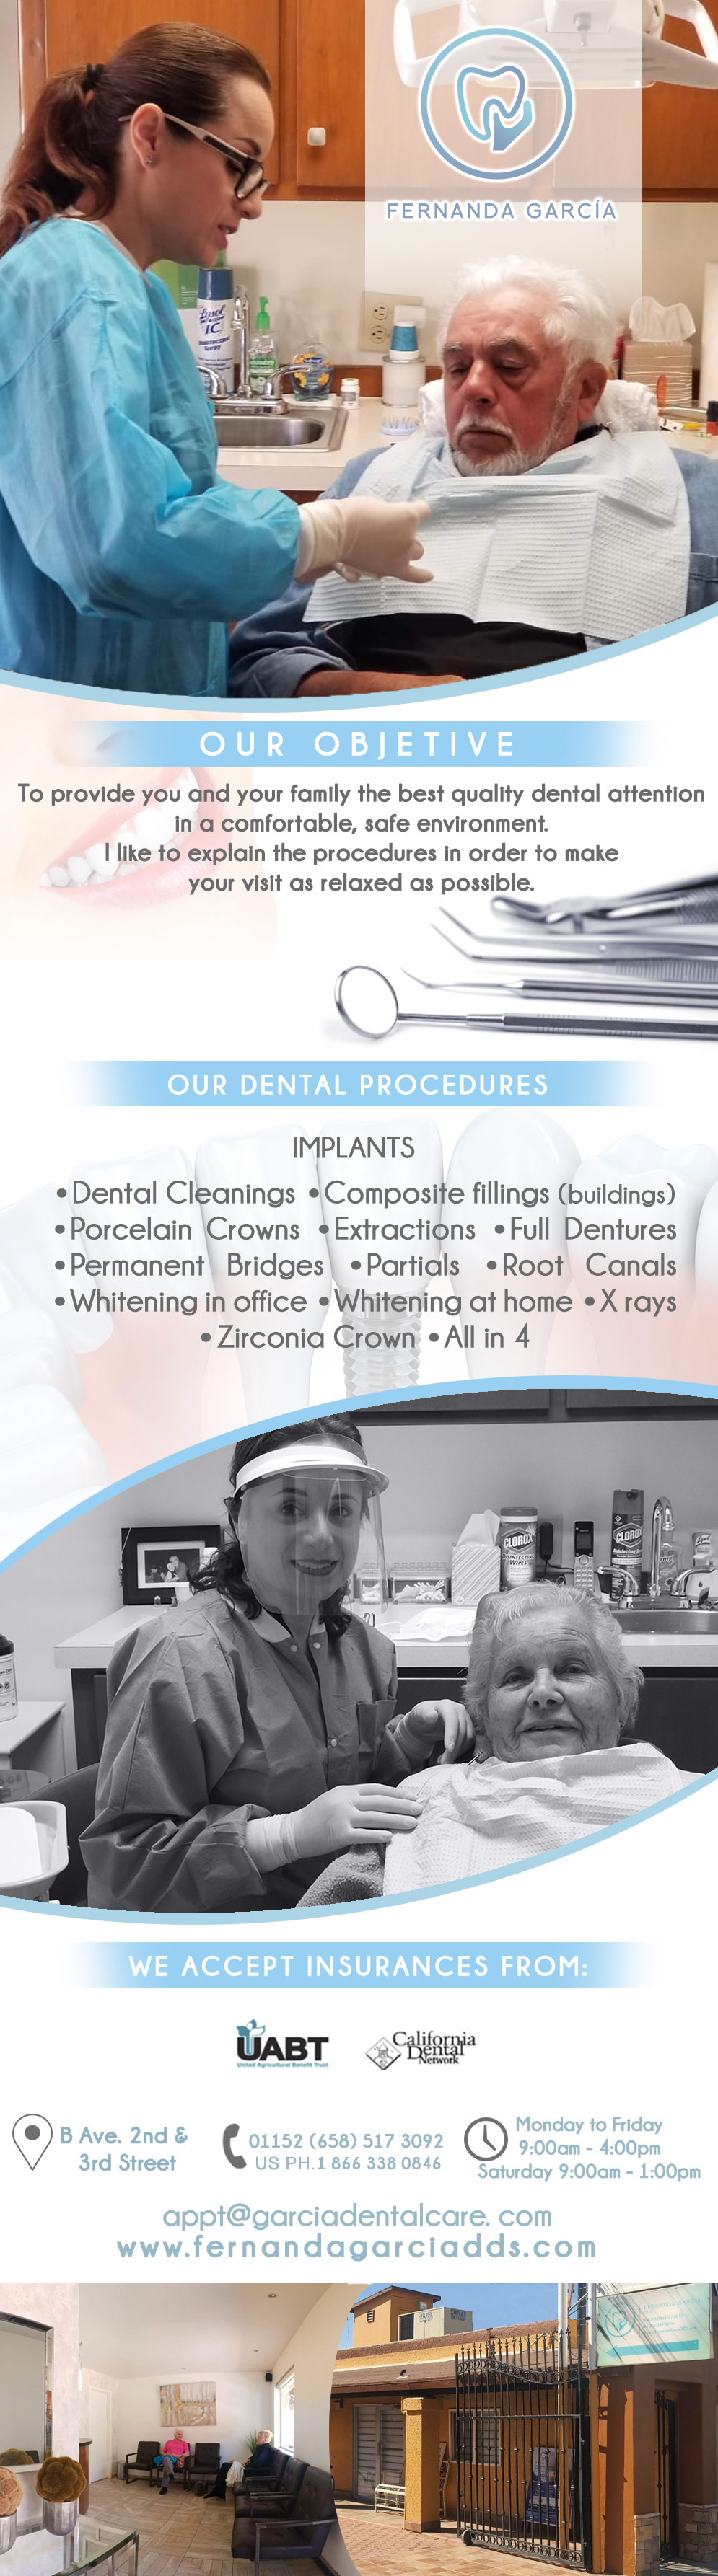 GARCIA DENTAL CARE Fernanda García Blas DDS in Algodones  in Algodones  My objective is to provide you and your family the best quality dental attention in a comfortable, safe environment. I like to explain the procedures in order to make your visit as relaxed as possible. DENTAL PROCEDURES:  IMPLANTS Dental Cleanings Composite fillings (buildings) Porcelain Crowns Extractions Full dentures Permanent Bridges Partials Root Canals Whitening in office Whitening at home X rays         General Dentistry and Specialists We offer complete dental services including general dentistry, cosmetic dentistry, periodontics, endodontics, orthodontics and dental implants. Bridges °X-Rays °Porcelain Veneers °Metal Crowns °Dental Bonding °Deep Cleaning °Denture Repair °Traditional Acrylic    dra garcia